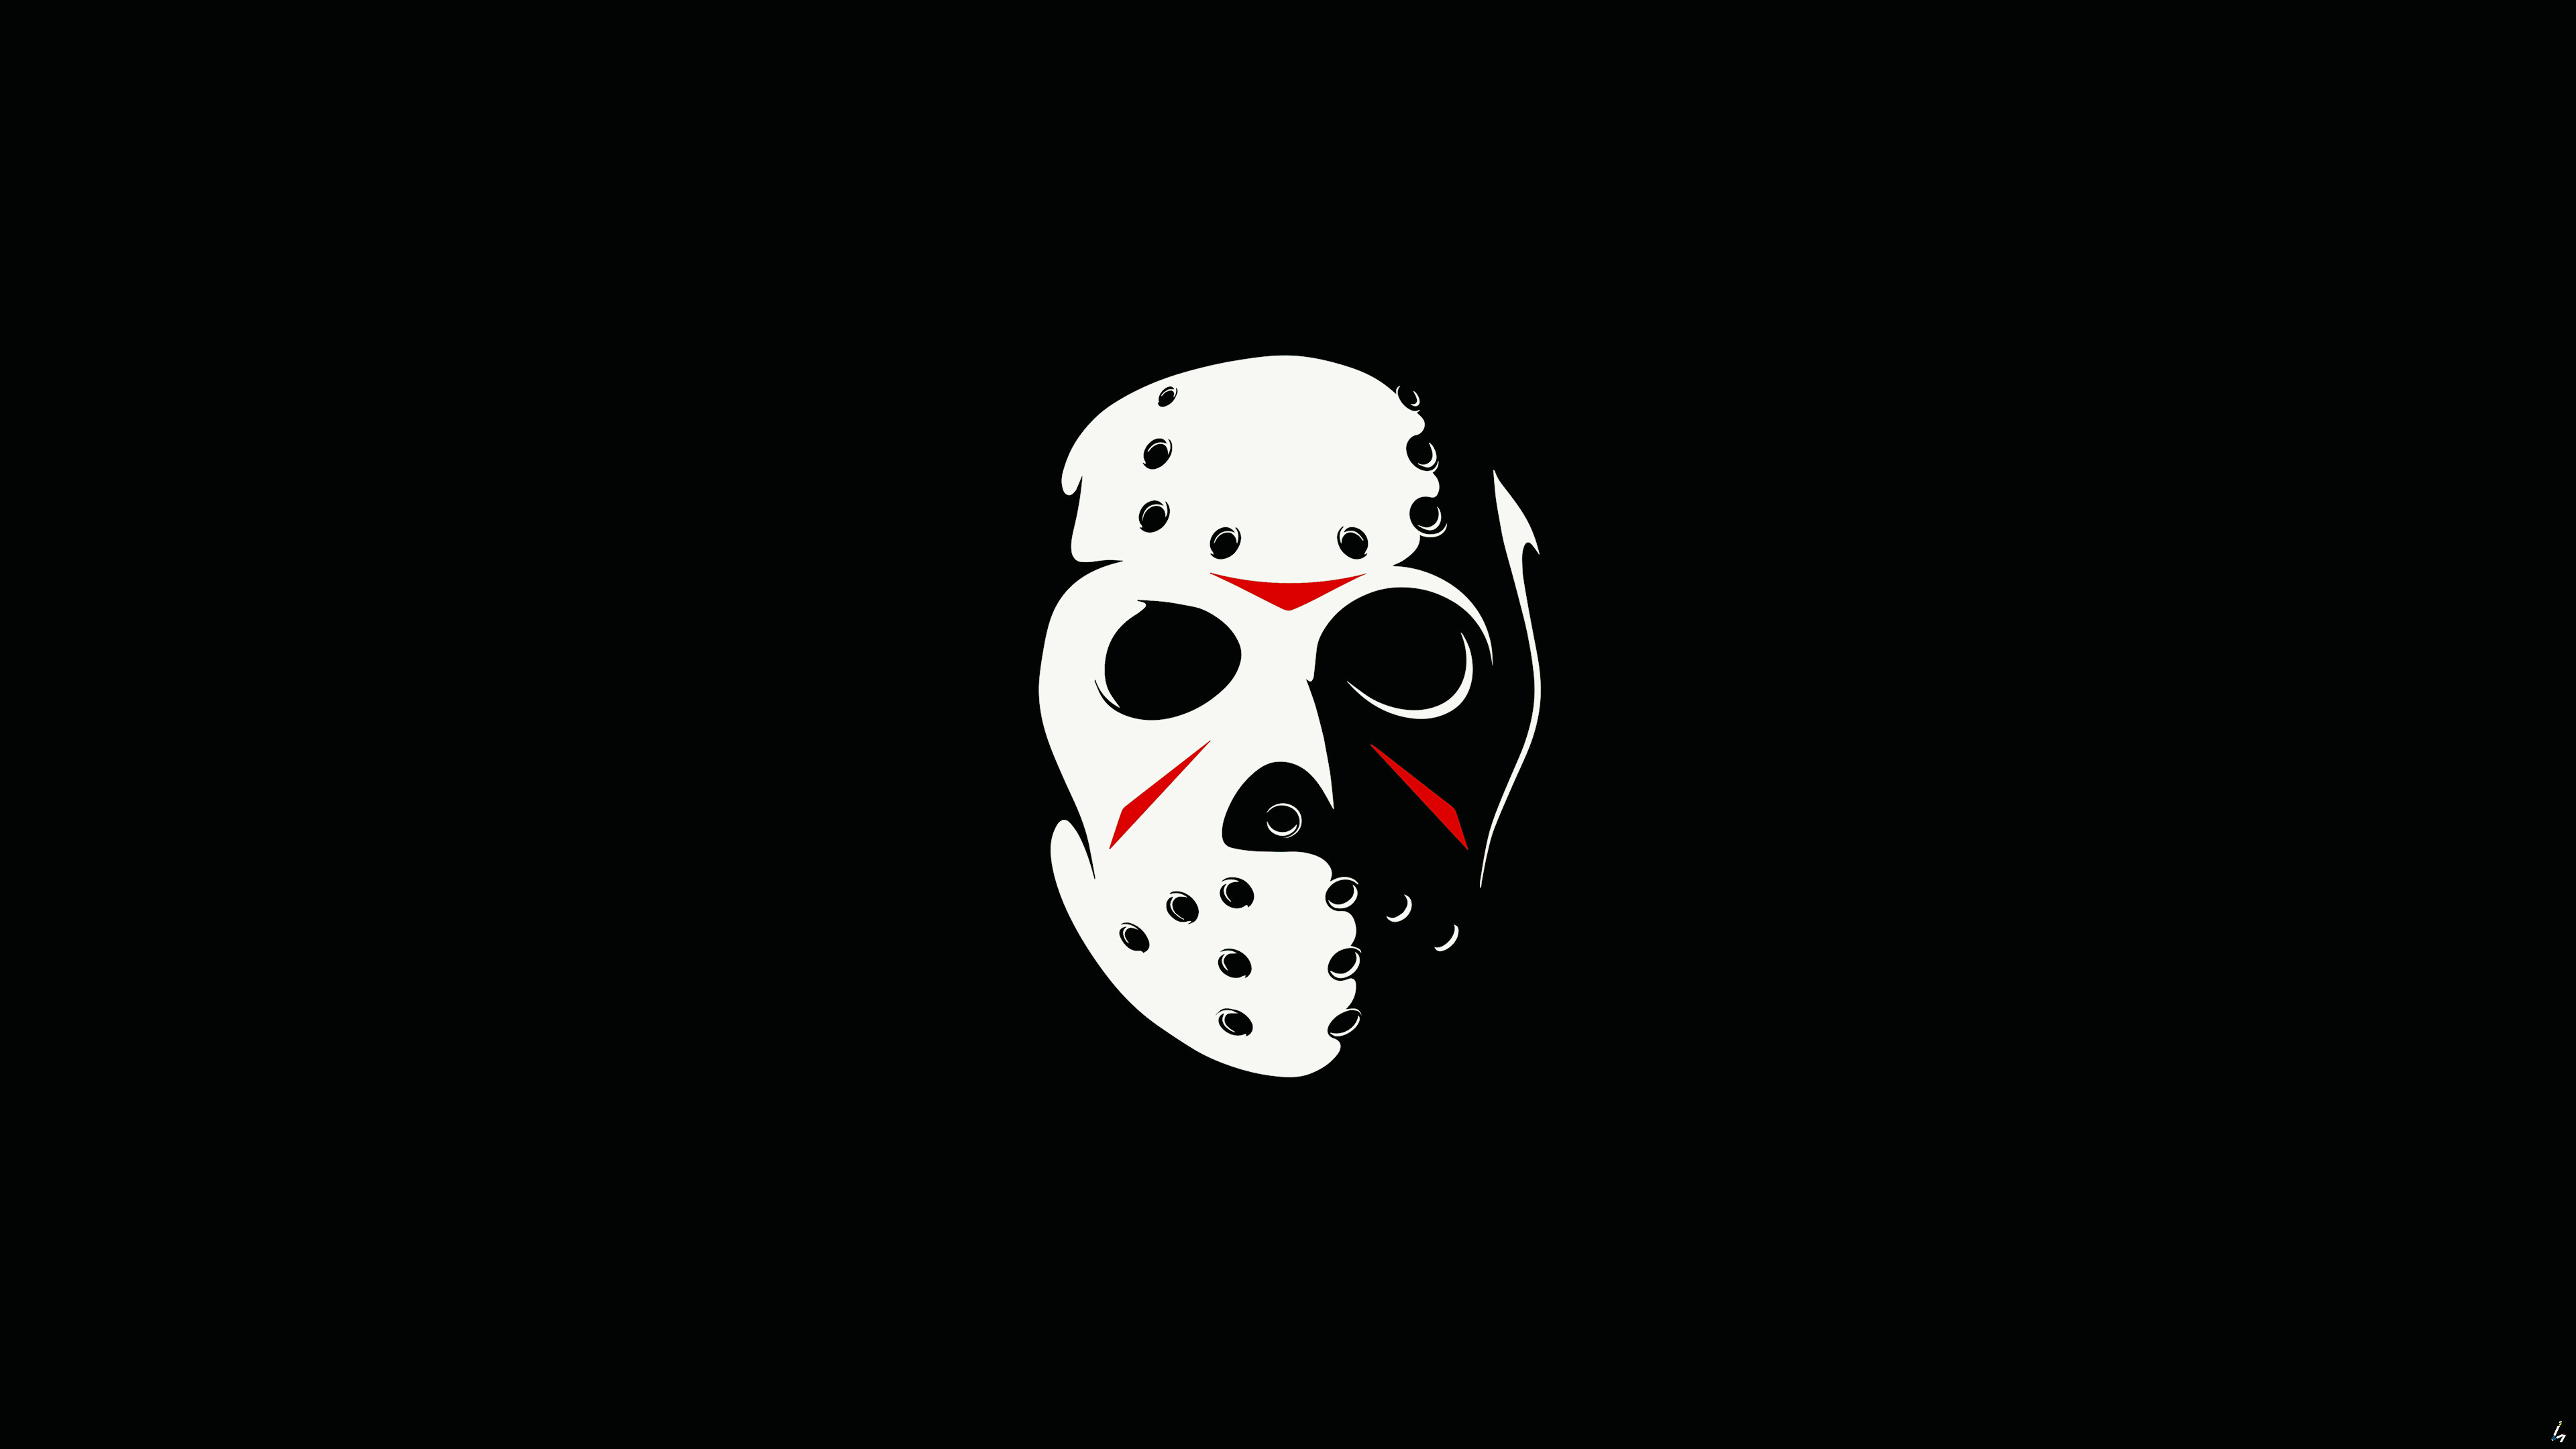 3840x2160 Friday The 13th The Game Minimalism Dark 4k